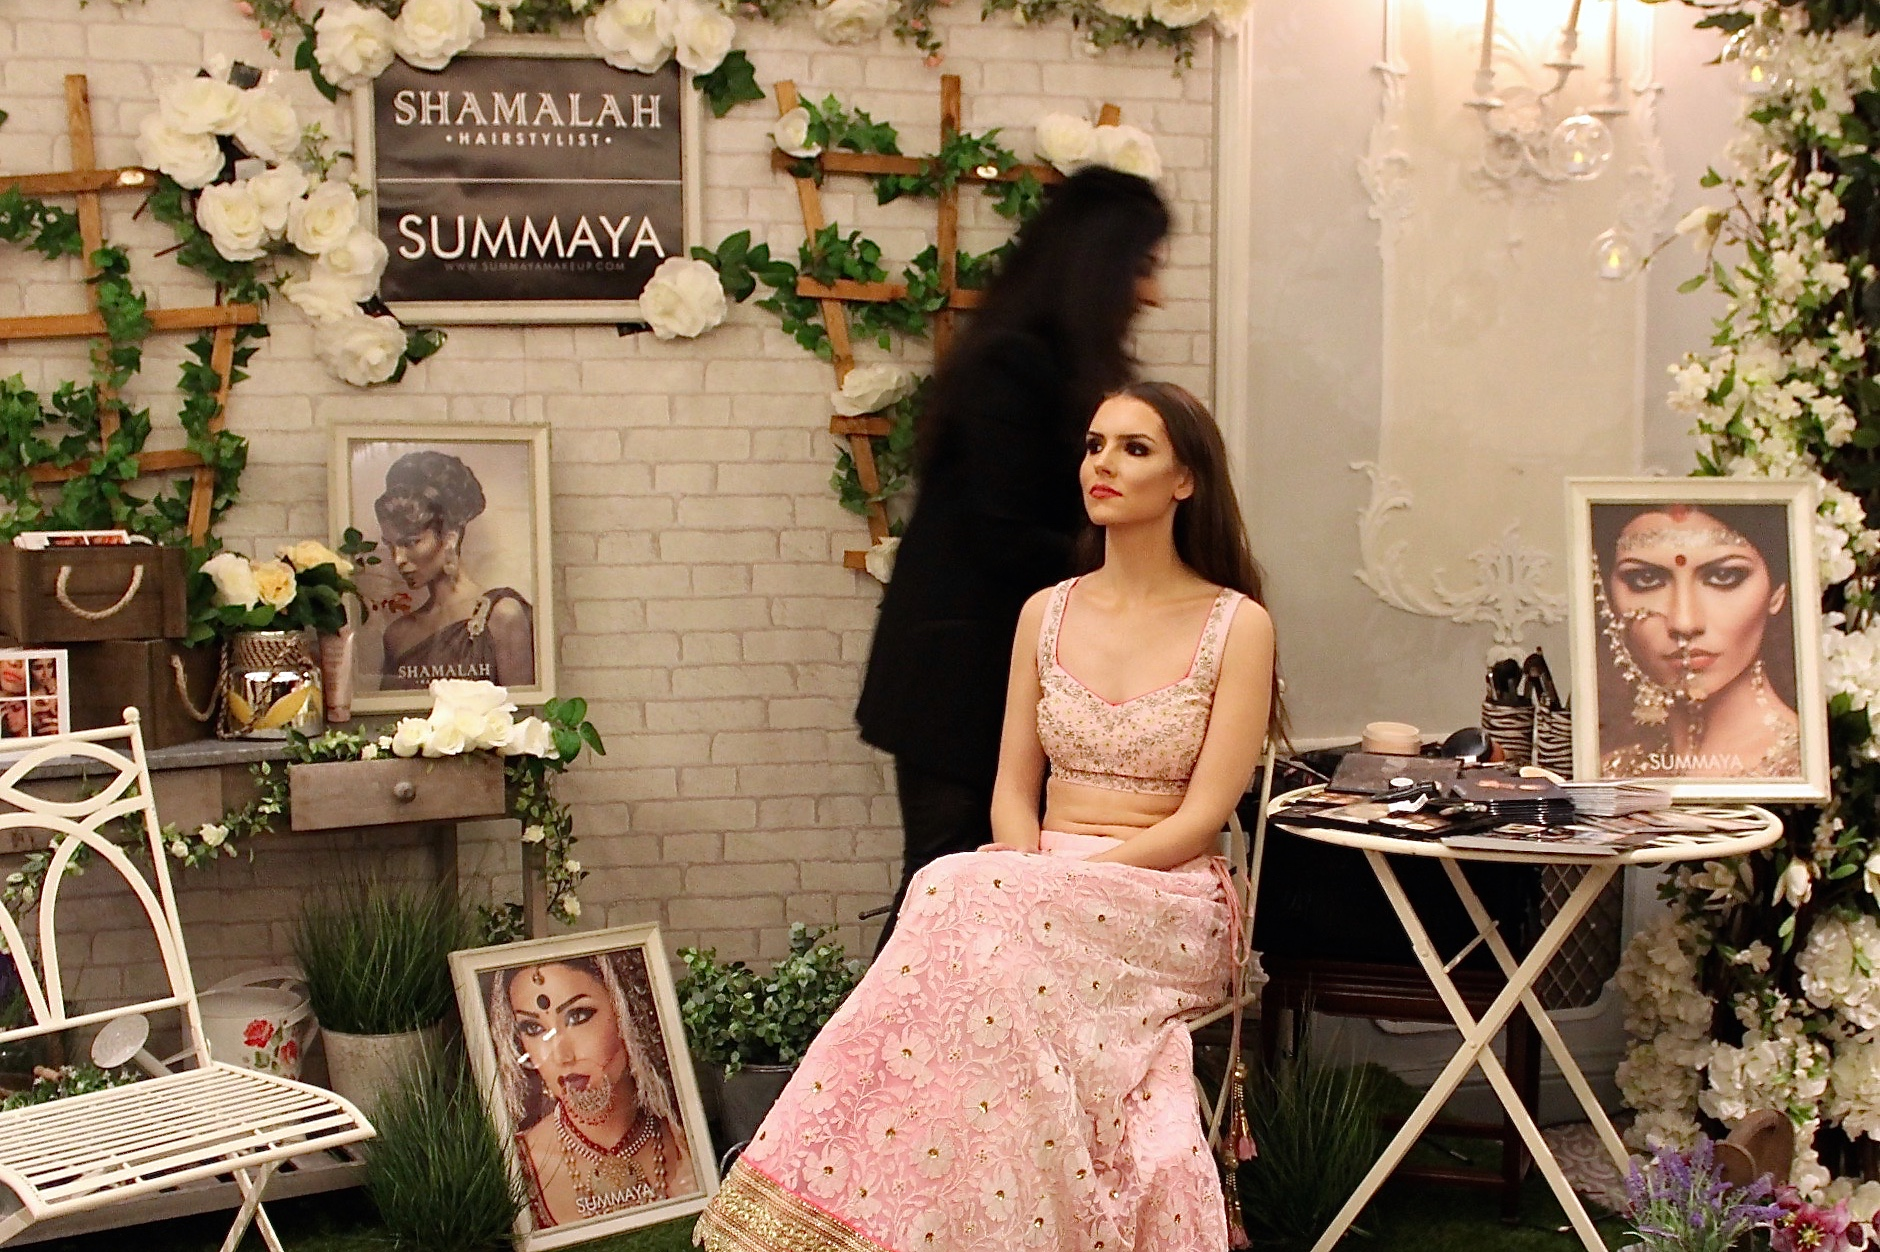 Summaya + Shamalah | The Maharani Diaries